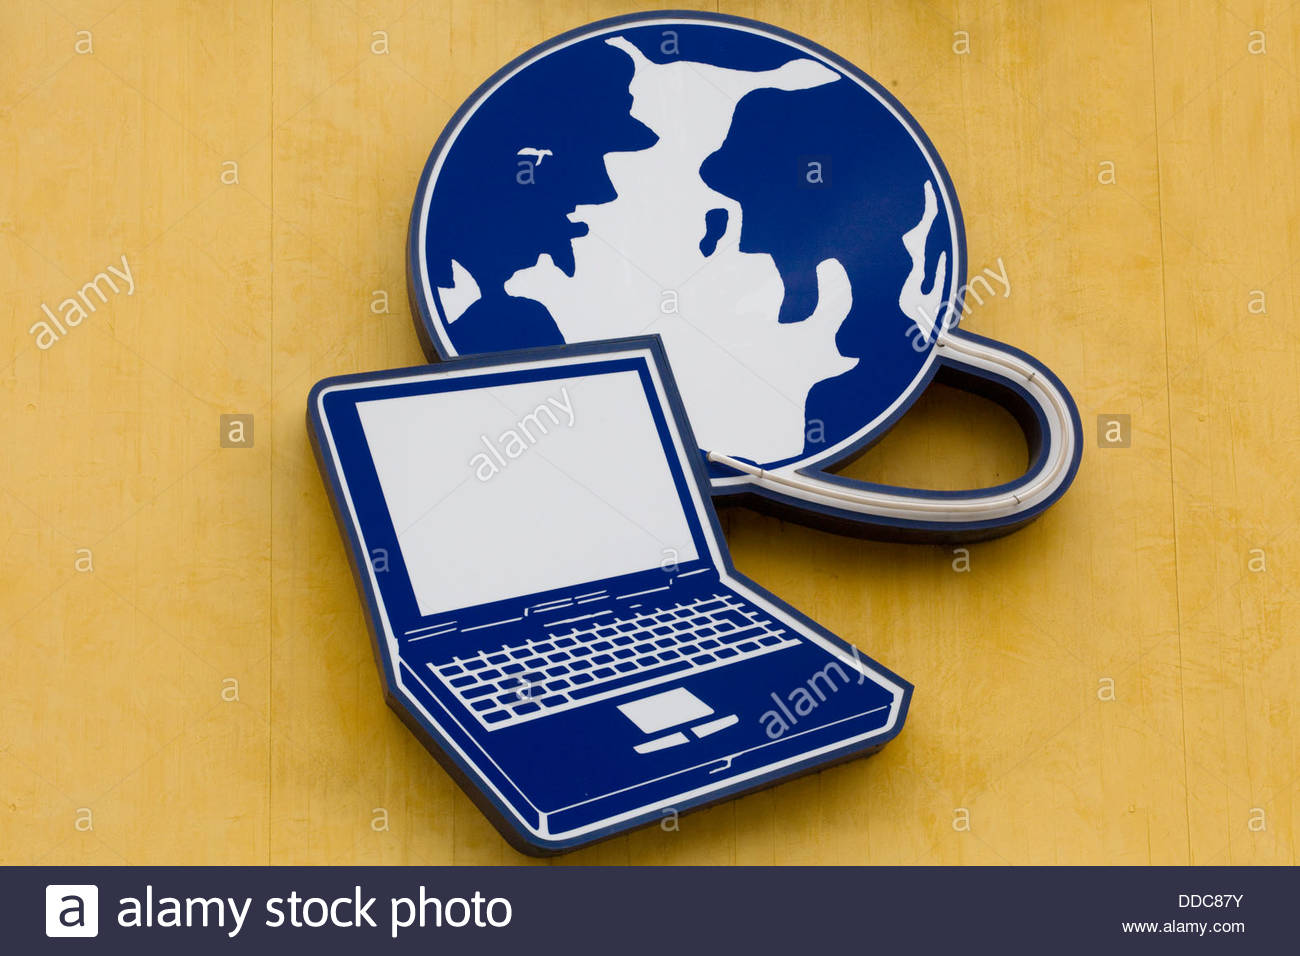 World and Laptop advertising the world wide web on yellow background - Stock Image